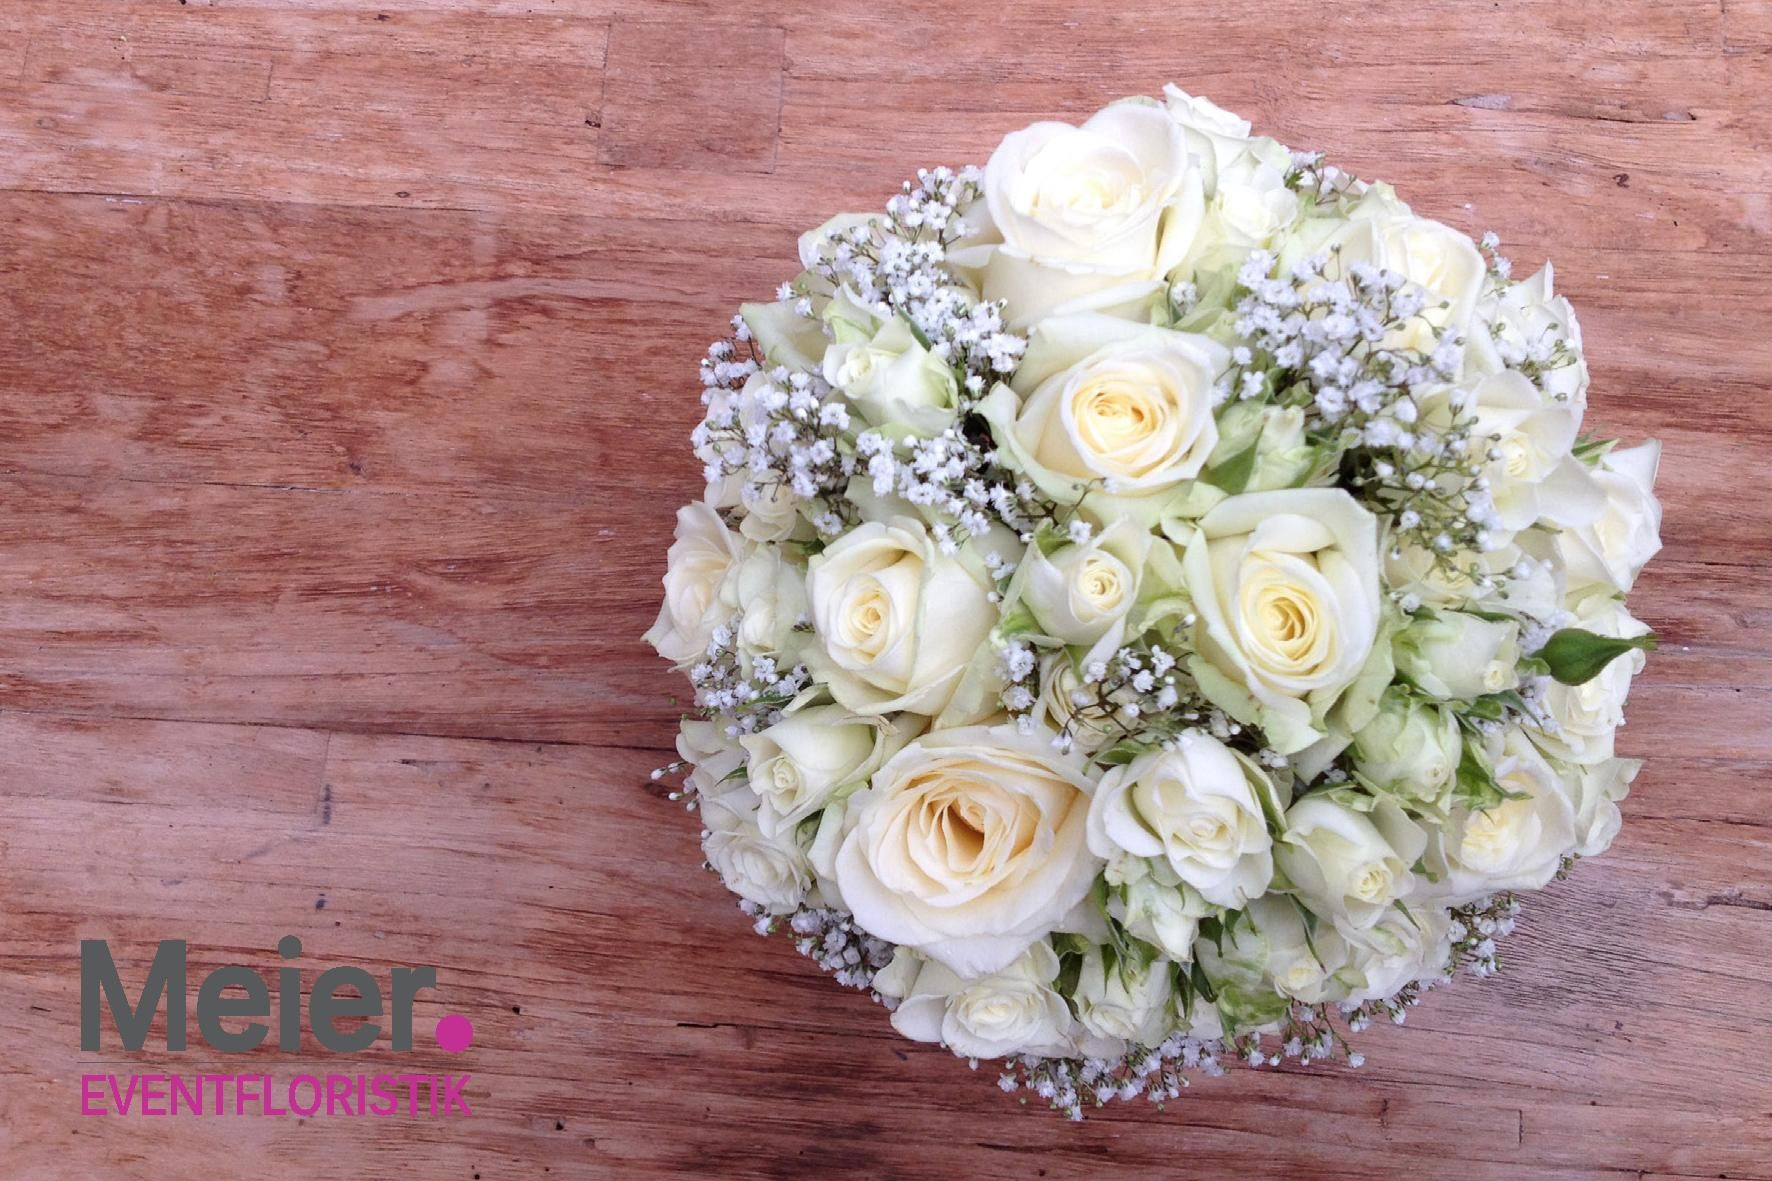 Download Wallpapers Wedding Bouquet White Roses Bouquet Of The Bride White Flowers Decoration Wedding Concepts Besthqwallpapers Com Vita Blommor Vita Rosor Brollopsbuketter